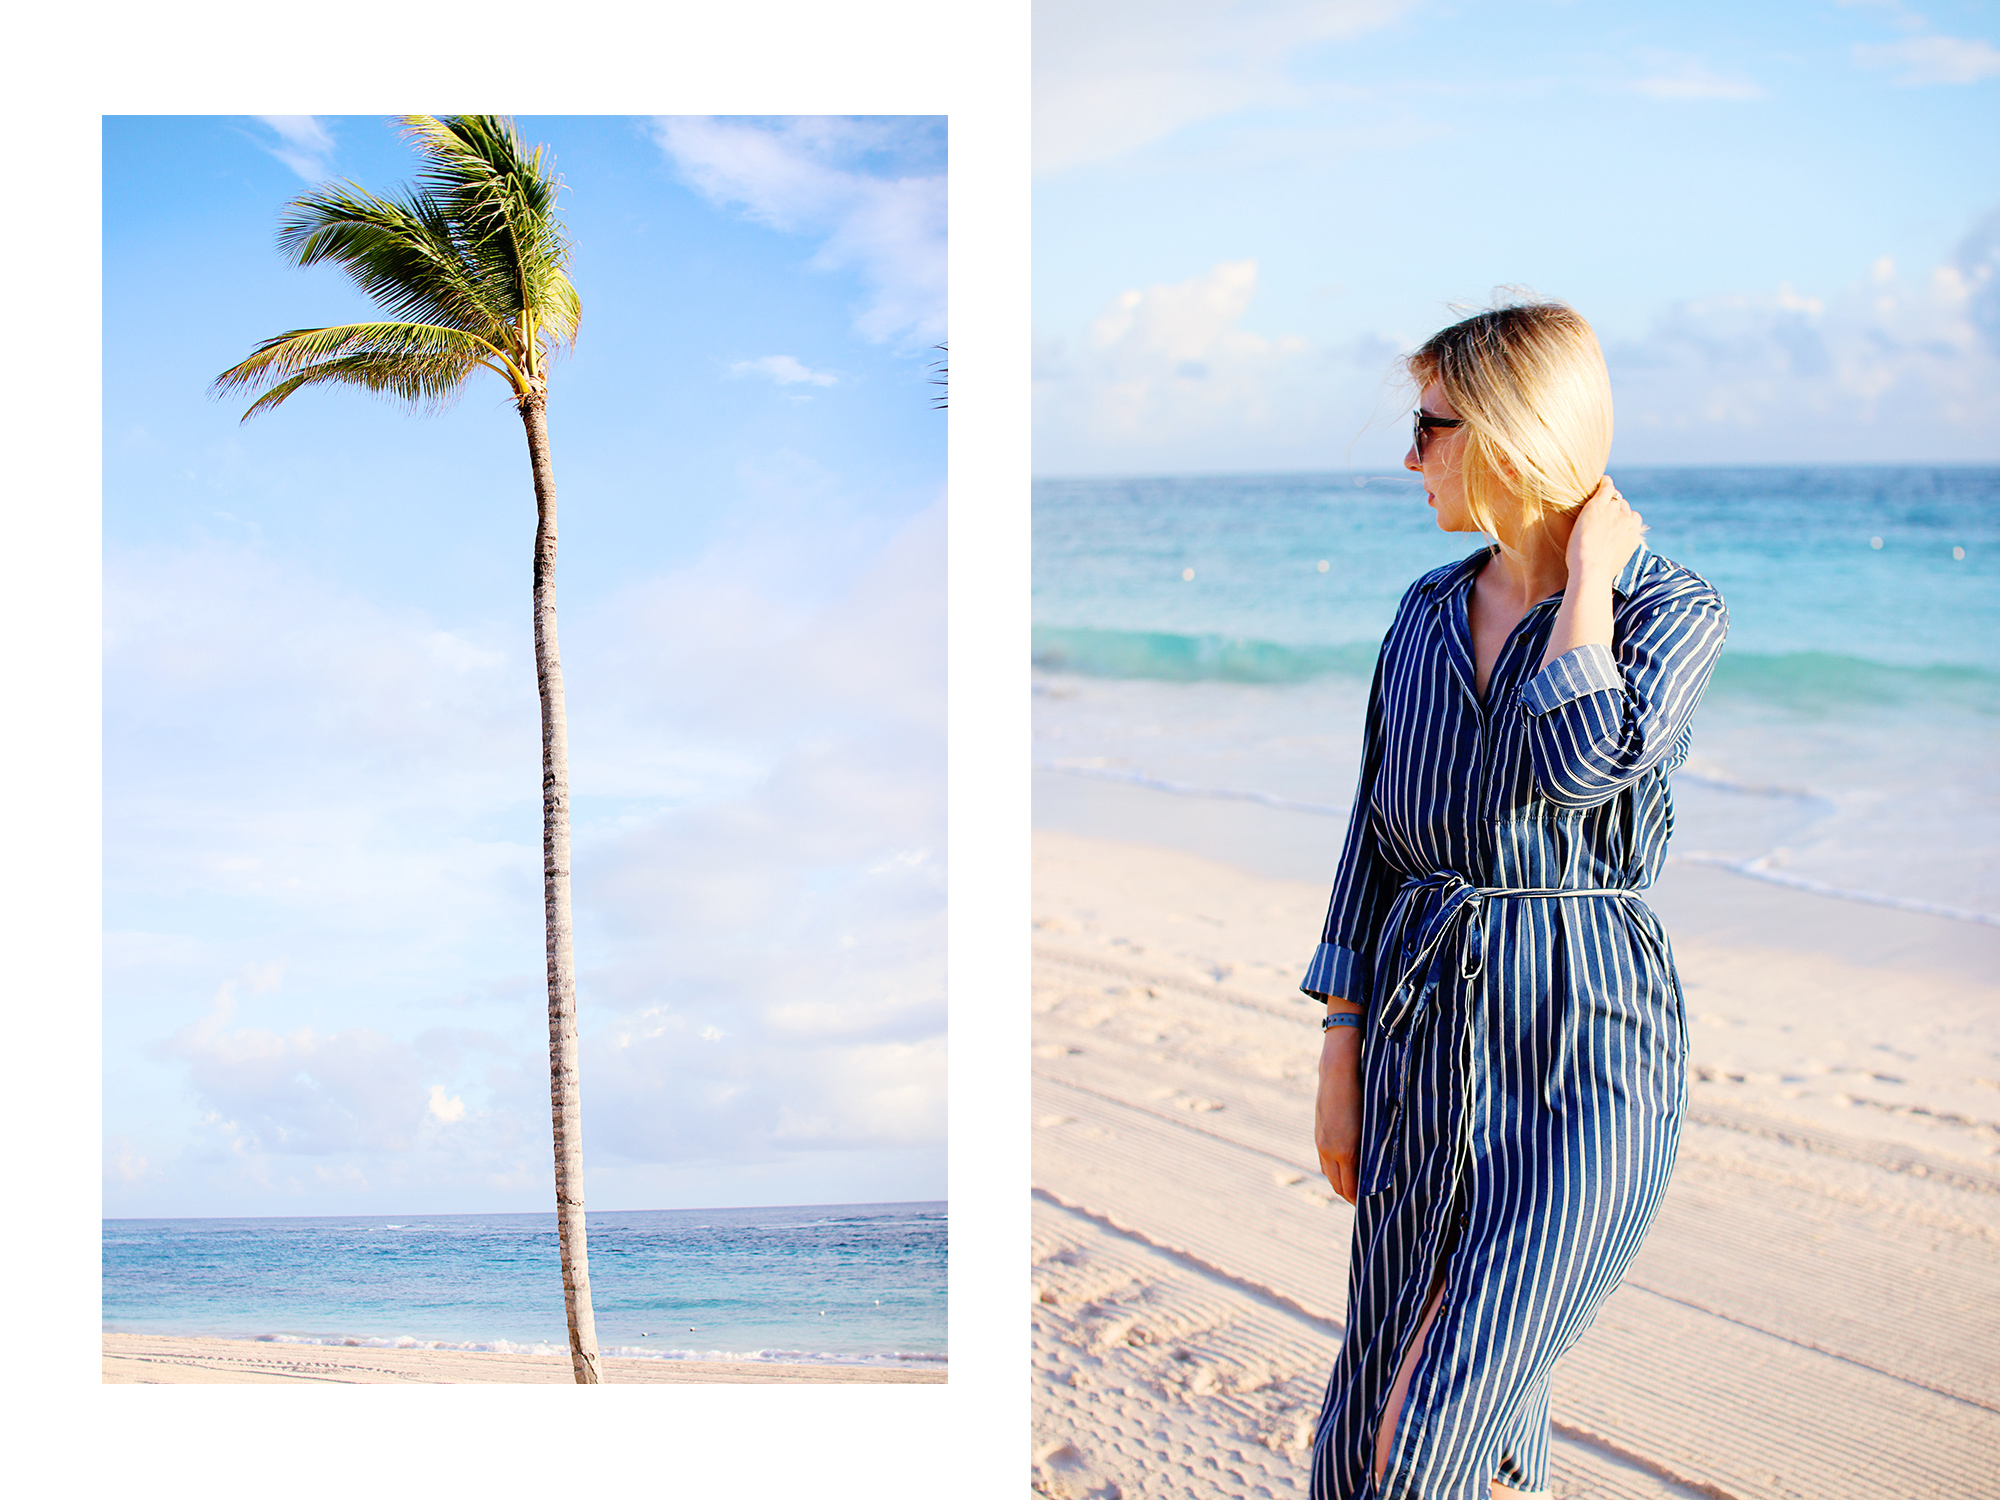 Punta Cana Stripes and Vibes